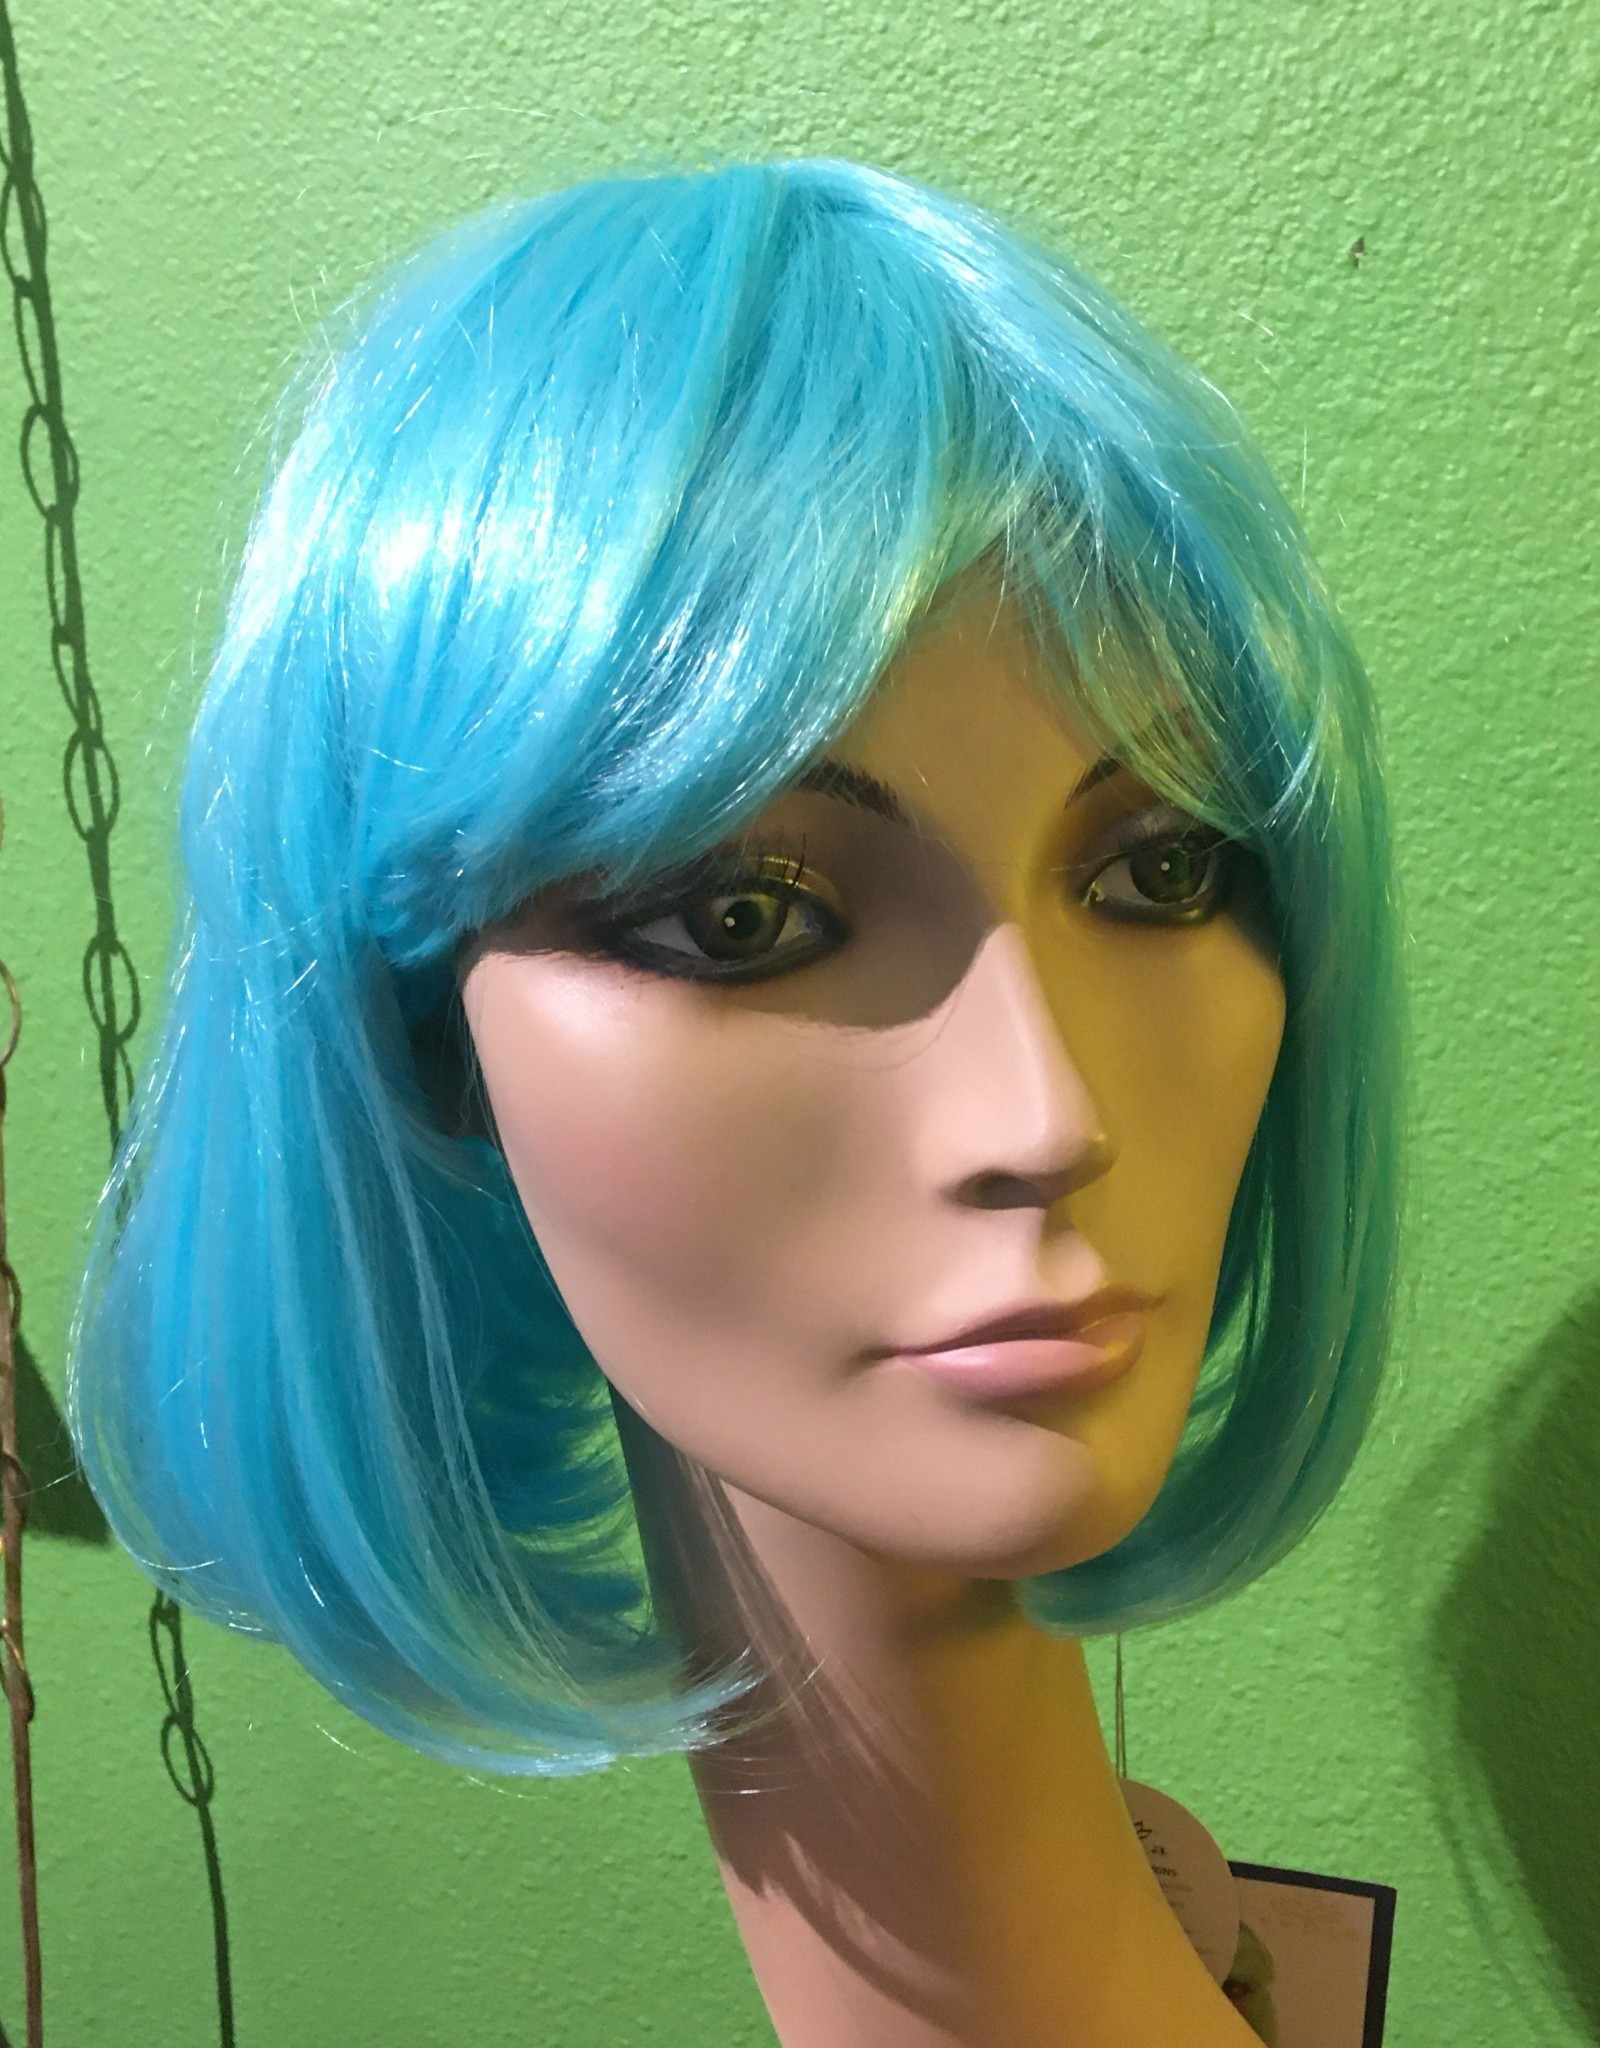 CINDY WIG, LIGHT BLUE